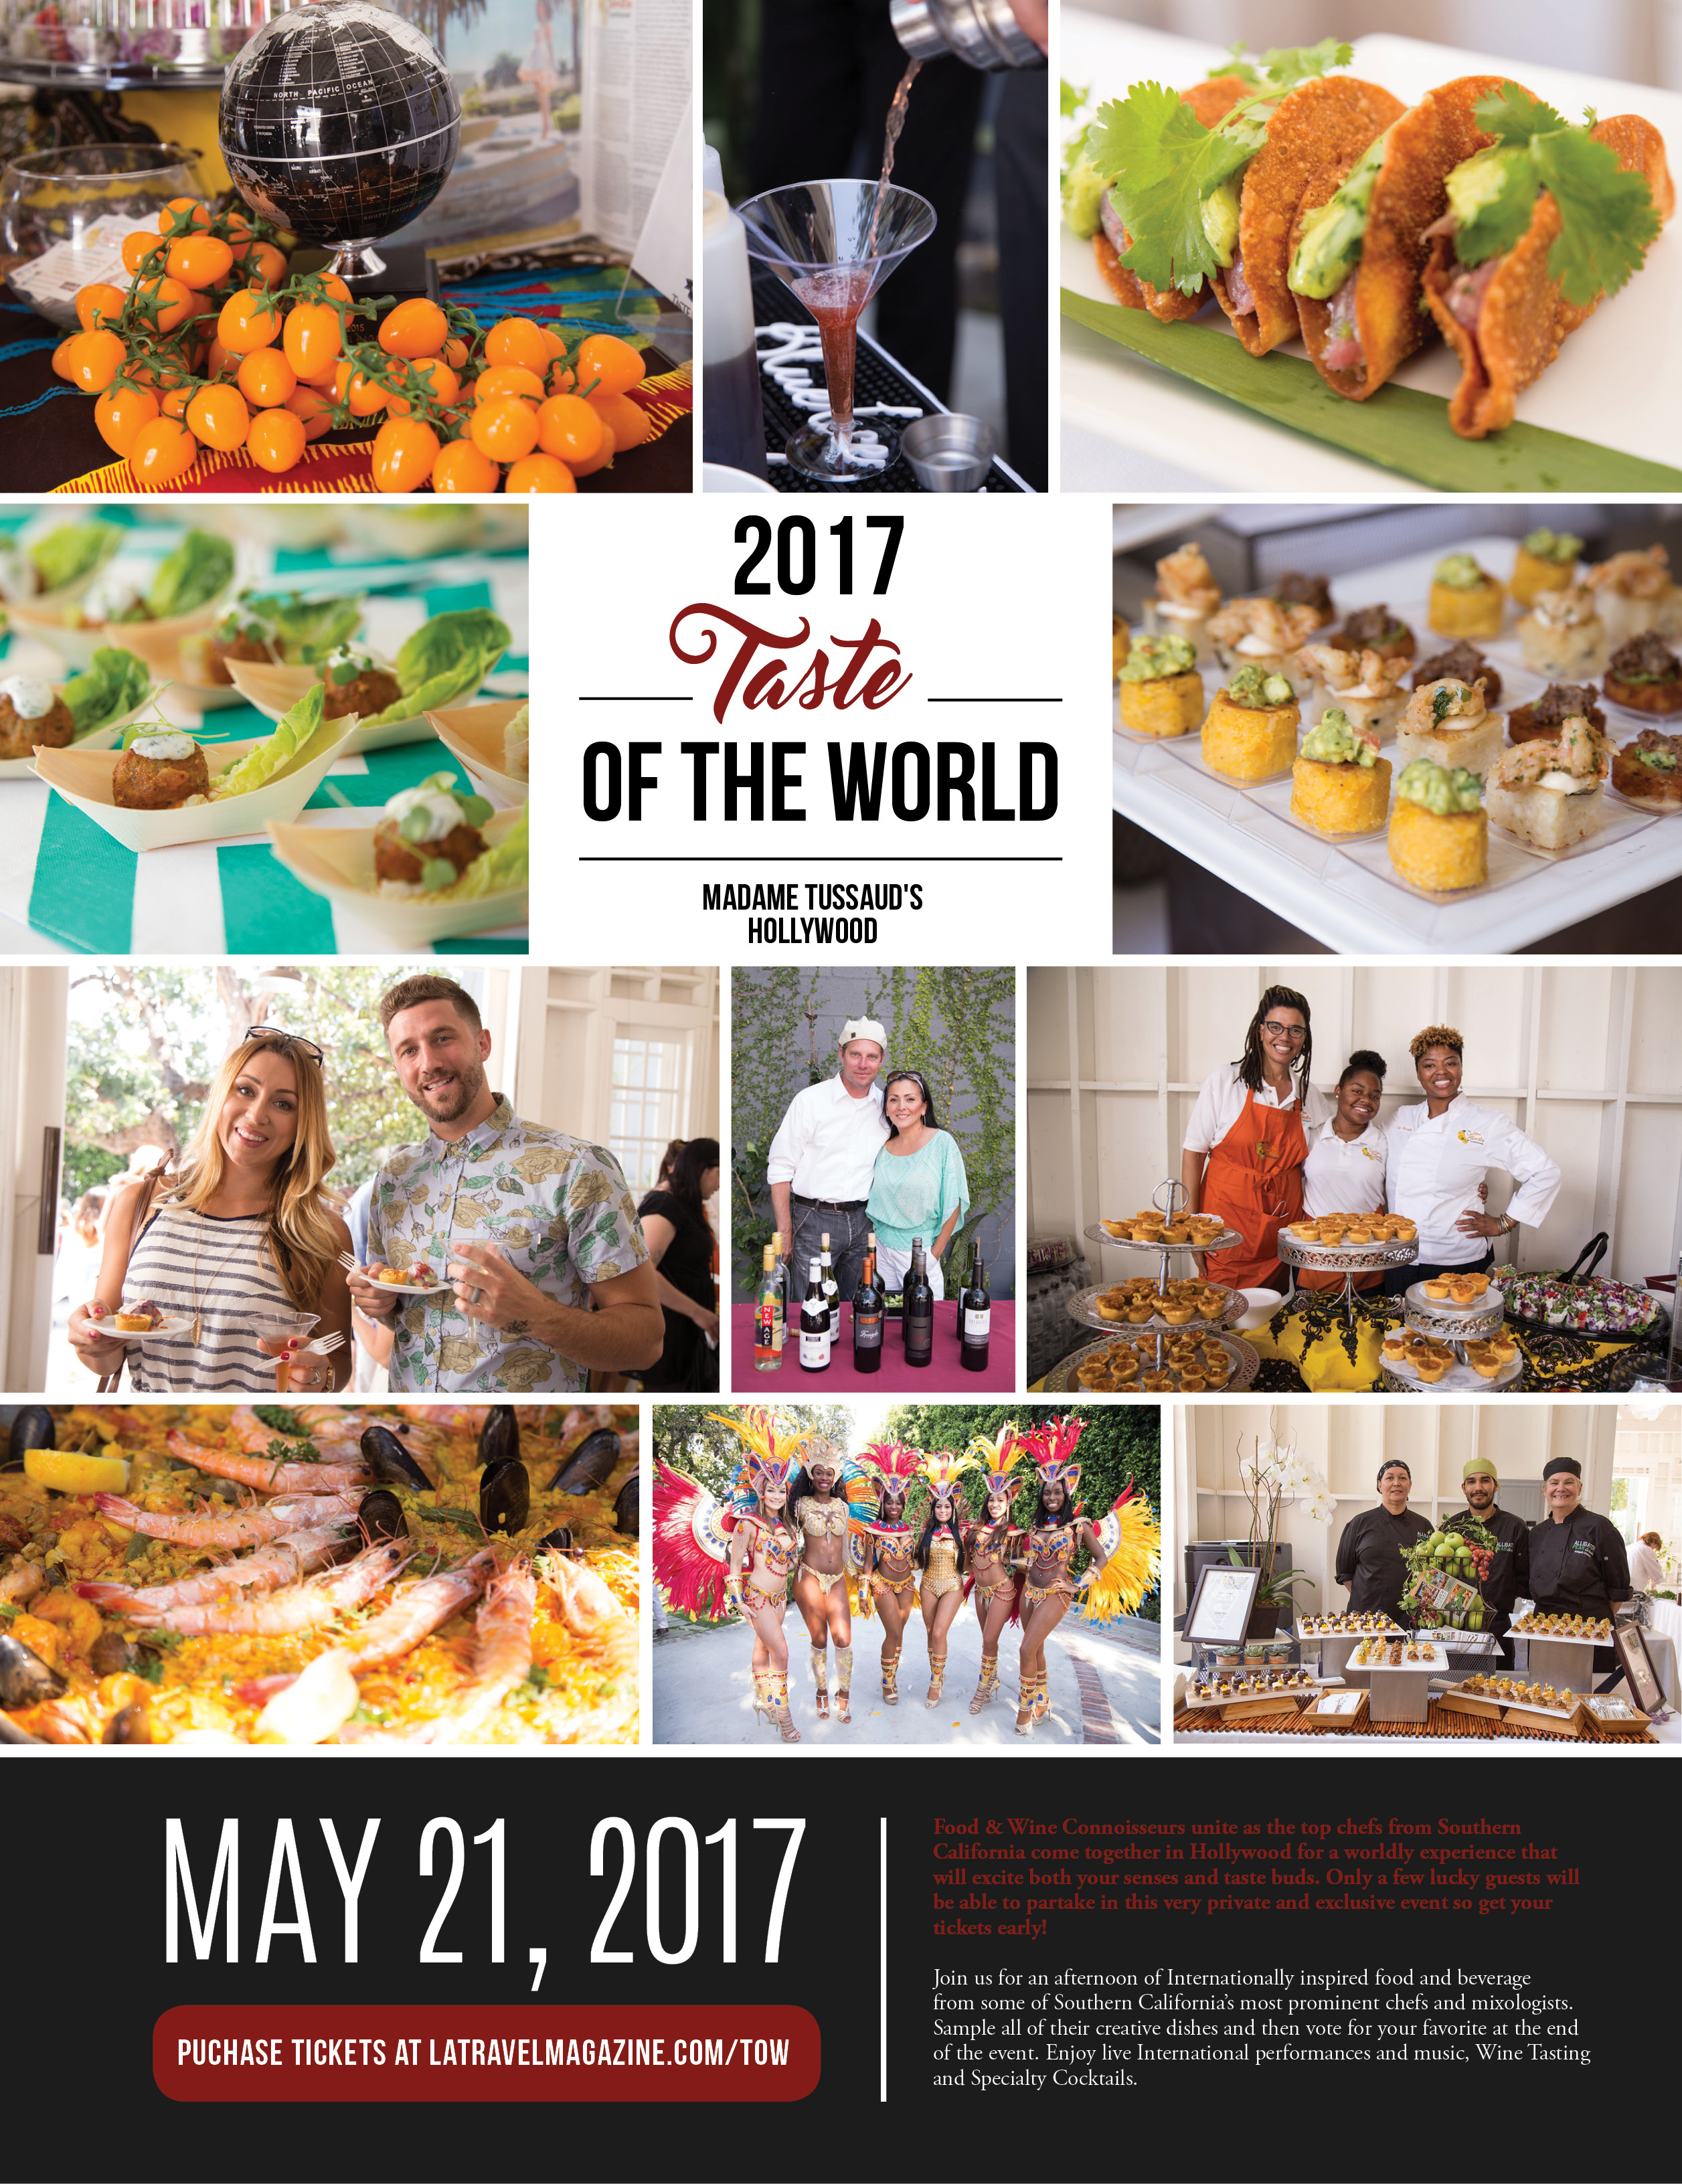 Taste of the World 2017